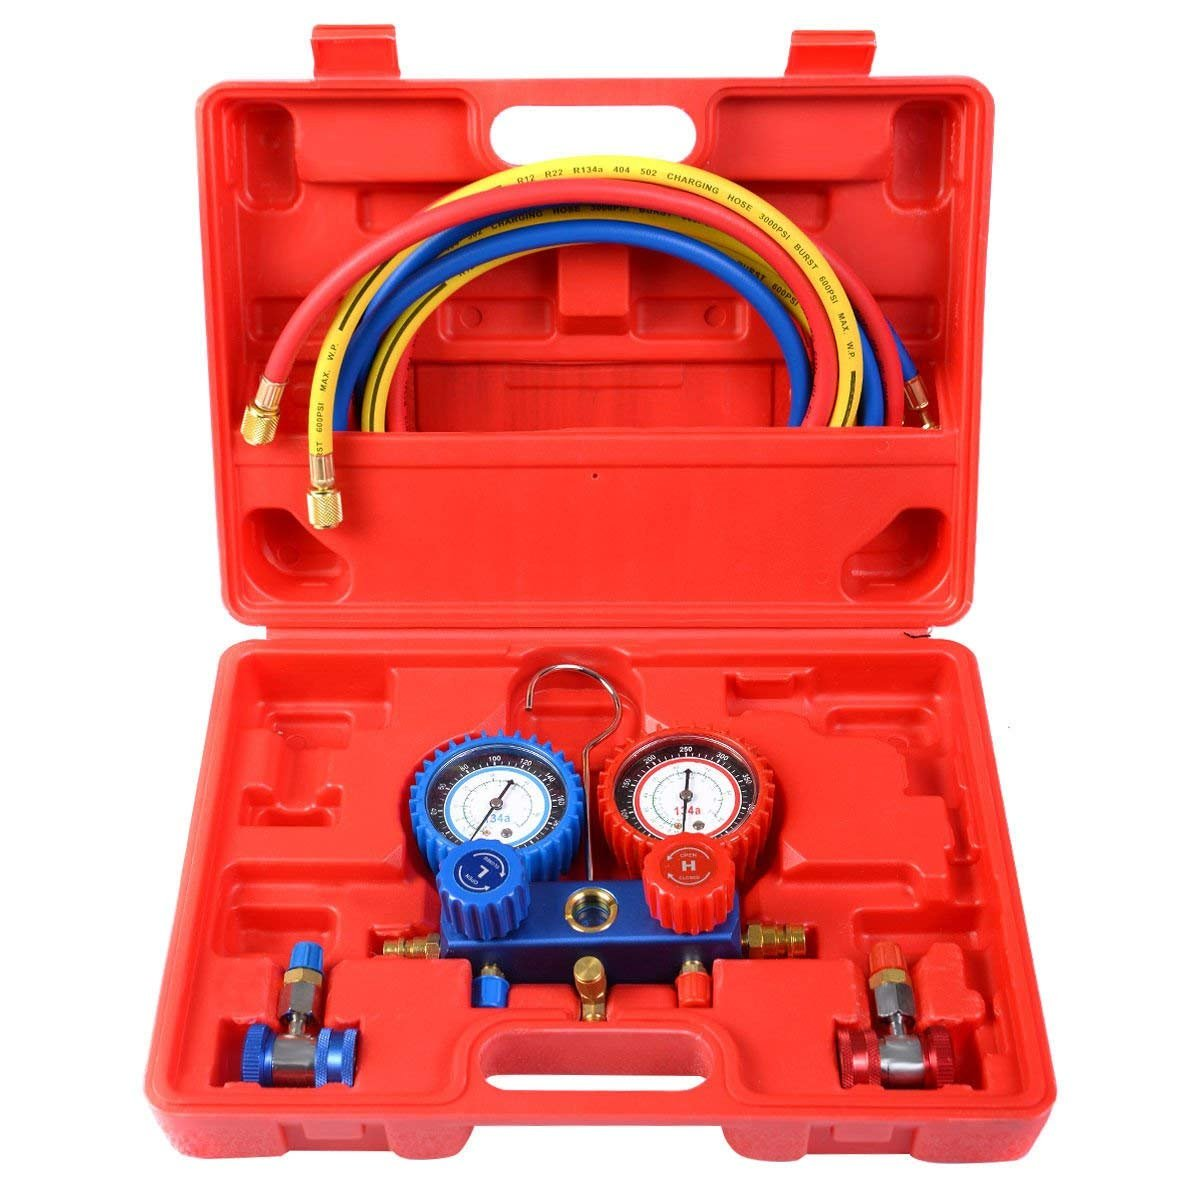 Goplus AC A/C Manifold Gauge Set for R134A Refrigerants 6FT Colored Hose Air Conditioner Freon Maintenance w/Hoses Coupler Adapters